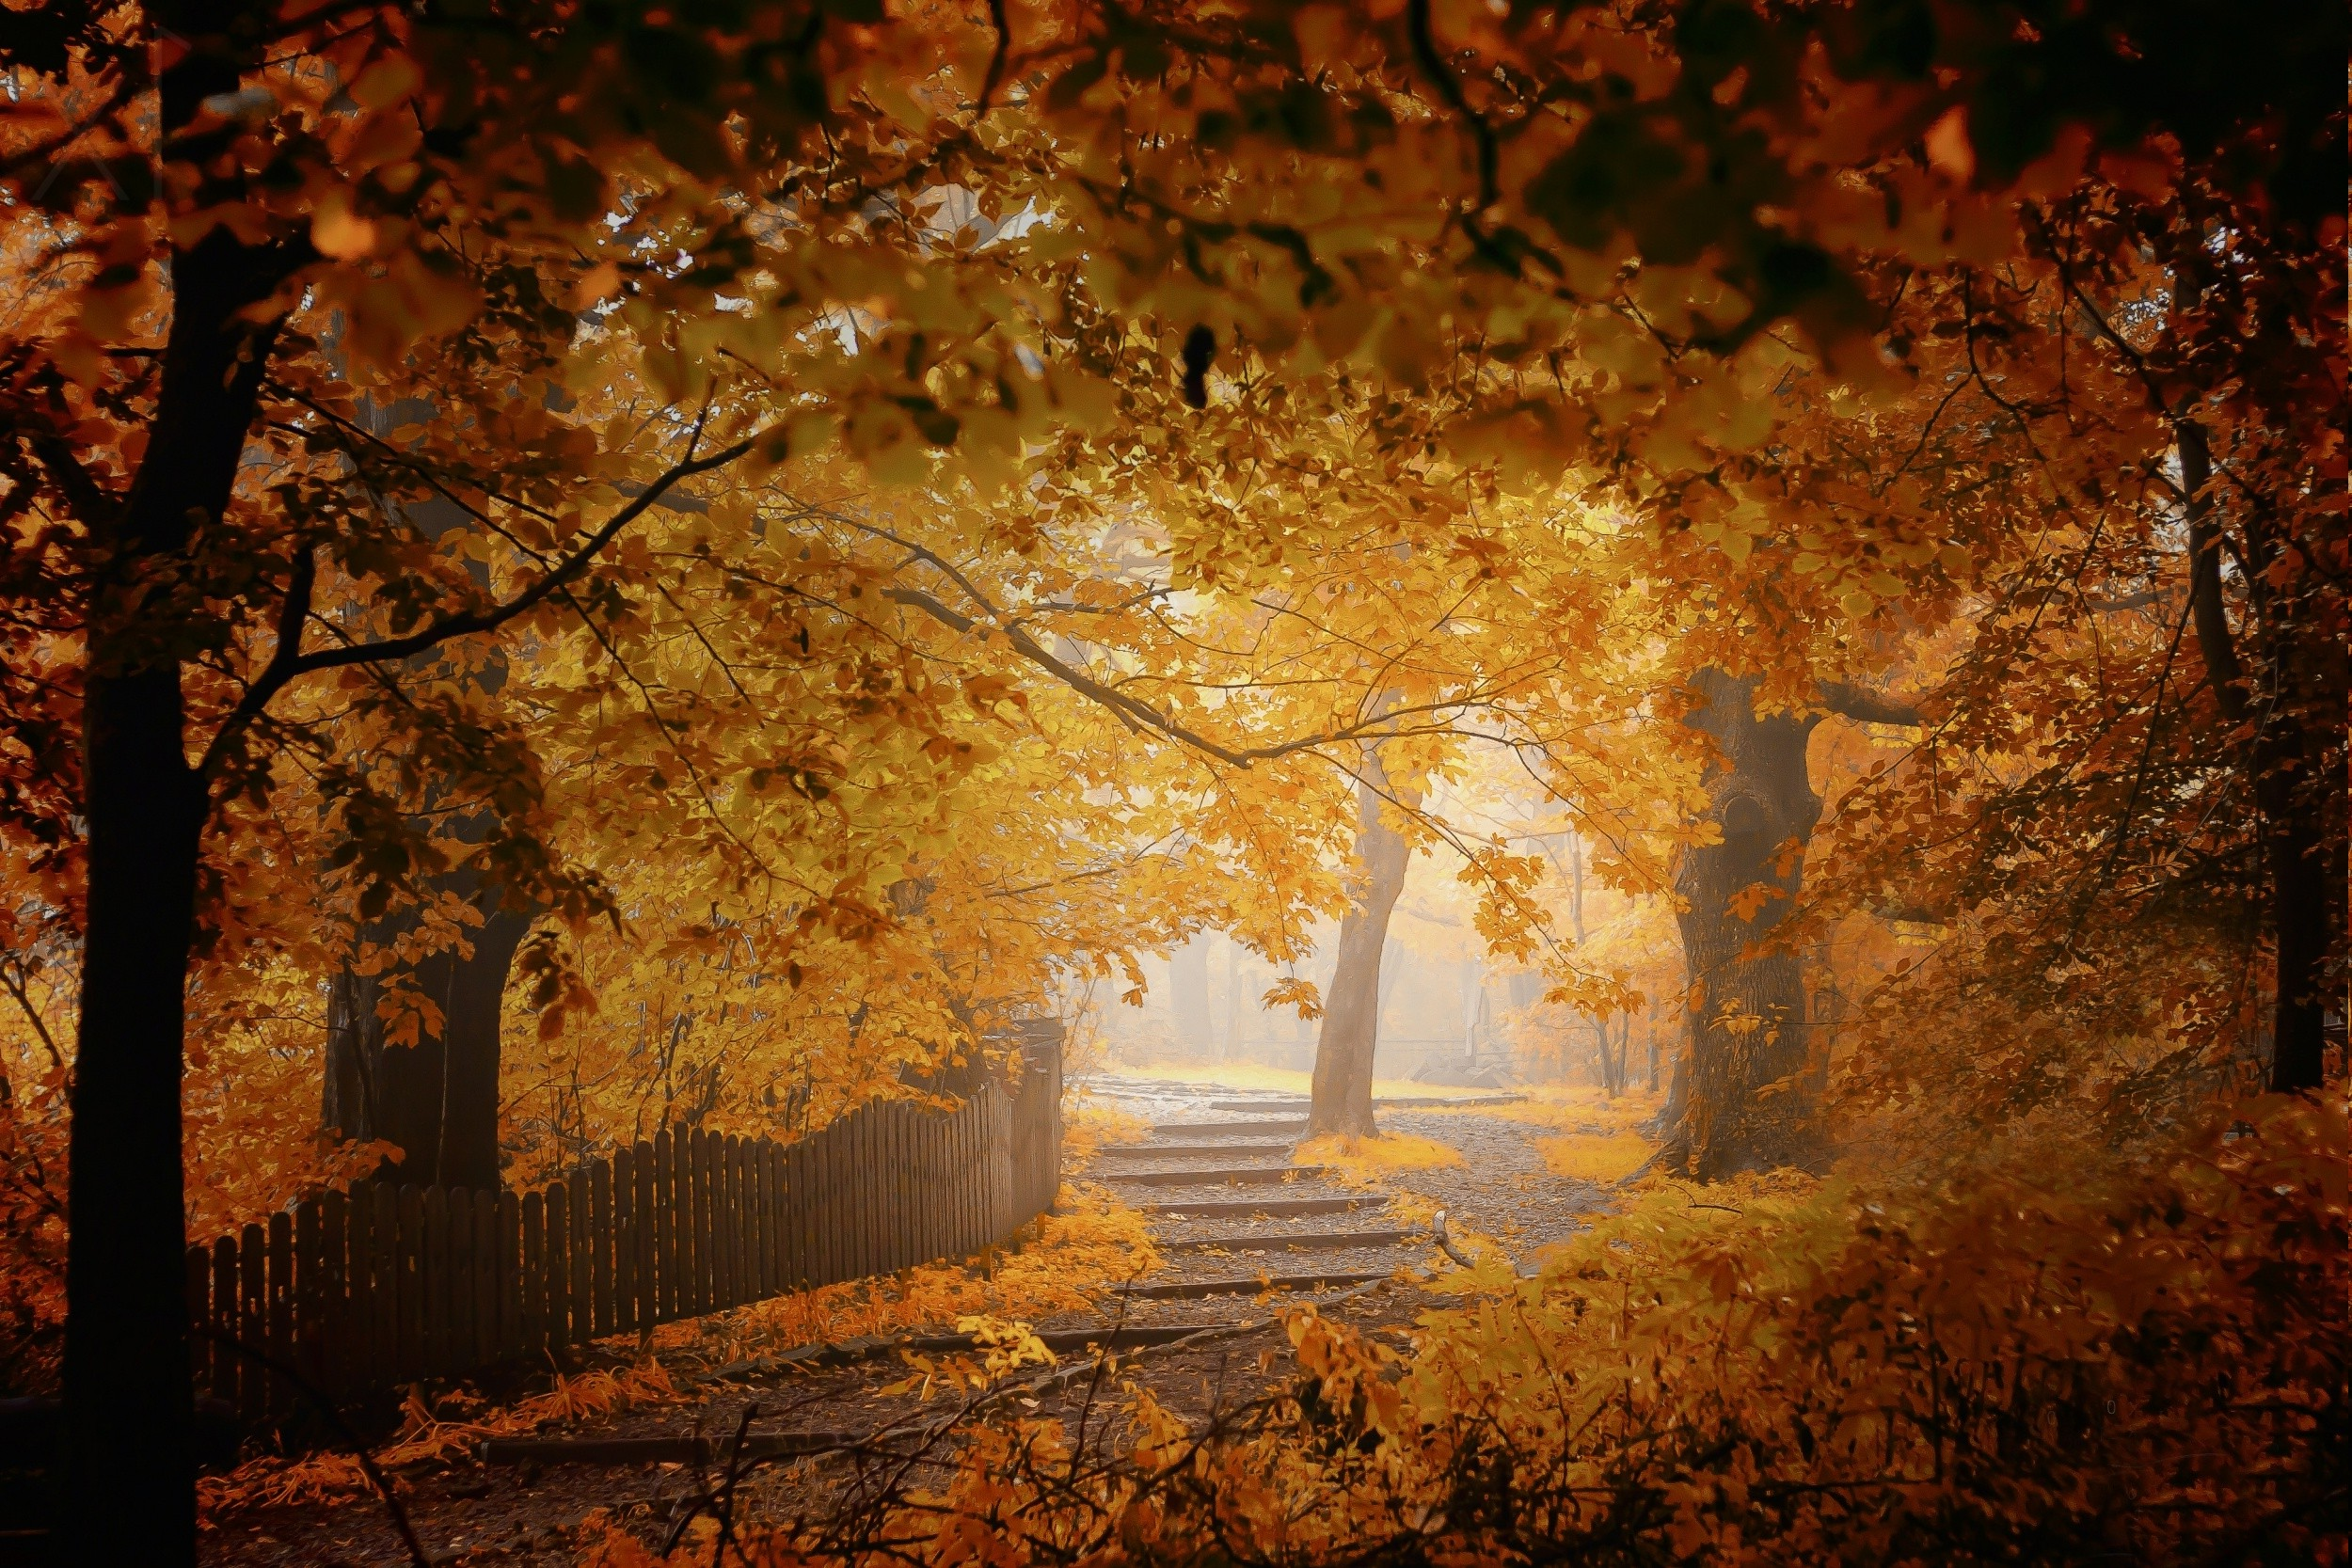 Fall Wallpaper Hd 1280x1024 Fall Mist Fence Walkway Leaves Trees Yellow Orange